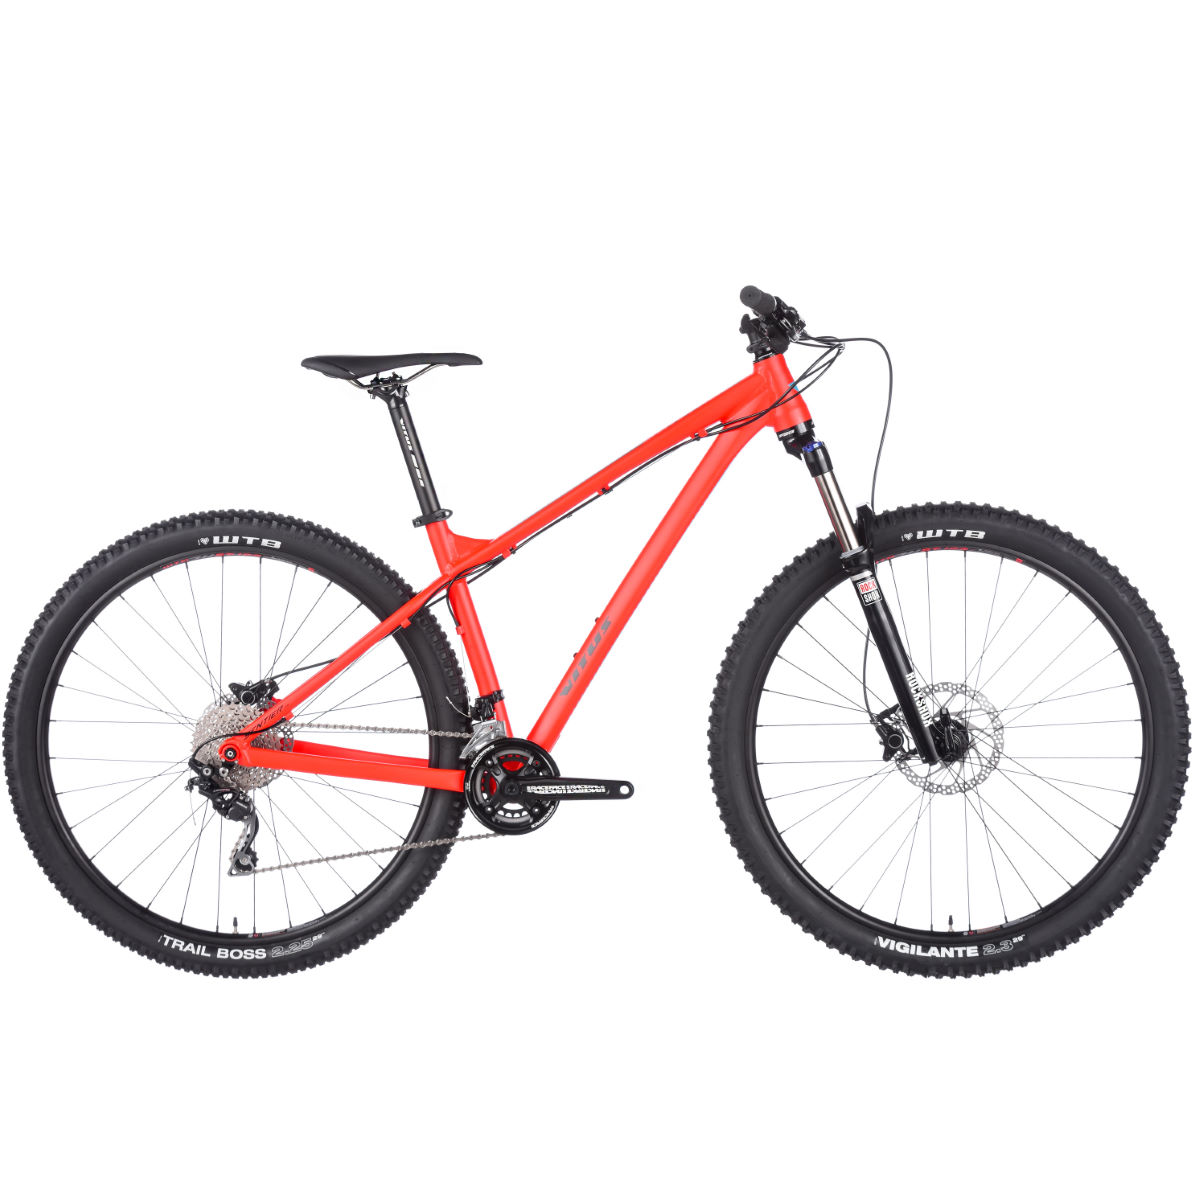 VTT Vitus Sentier 29 (2017) - X-Large Stock Bike Red/Green VTT semi-rigides